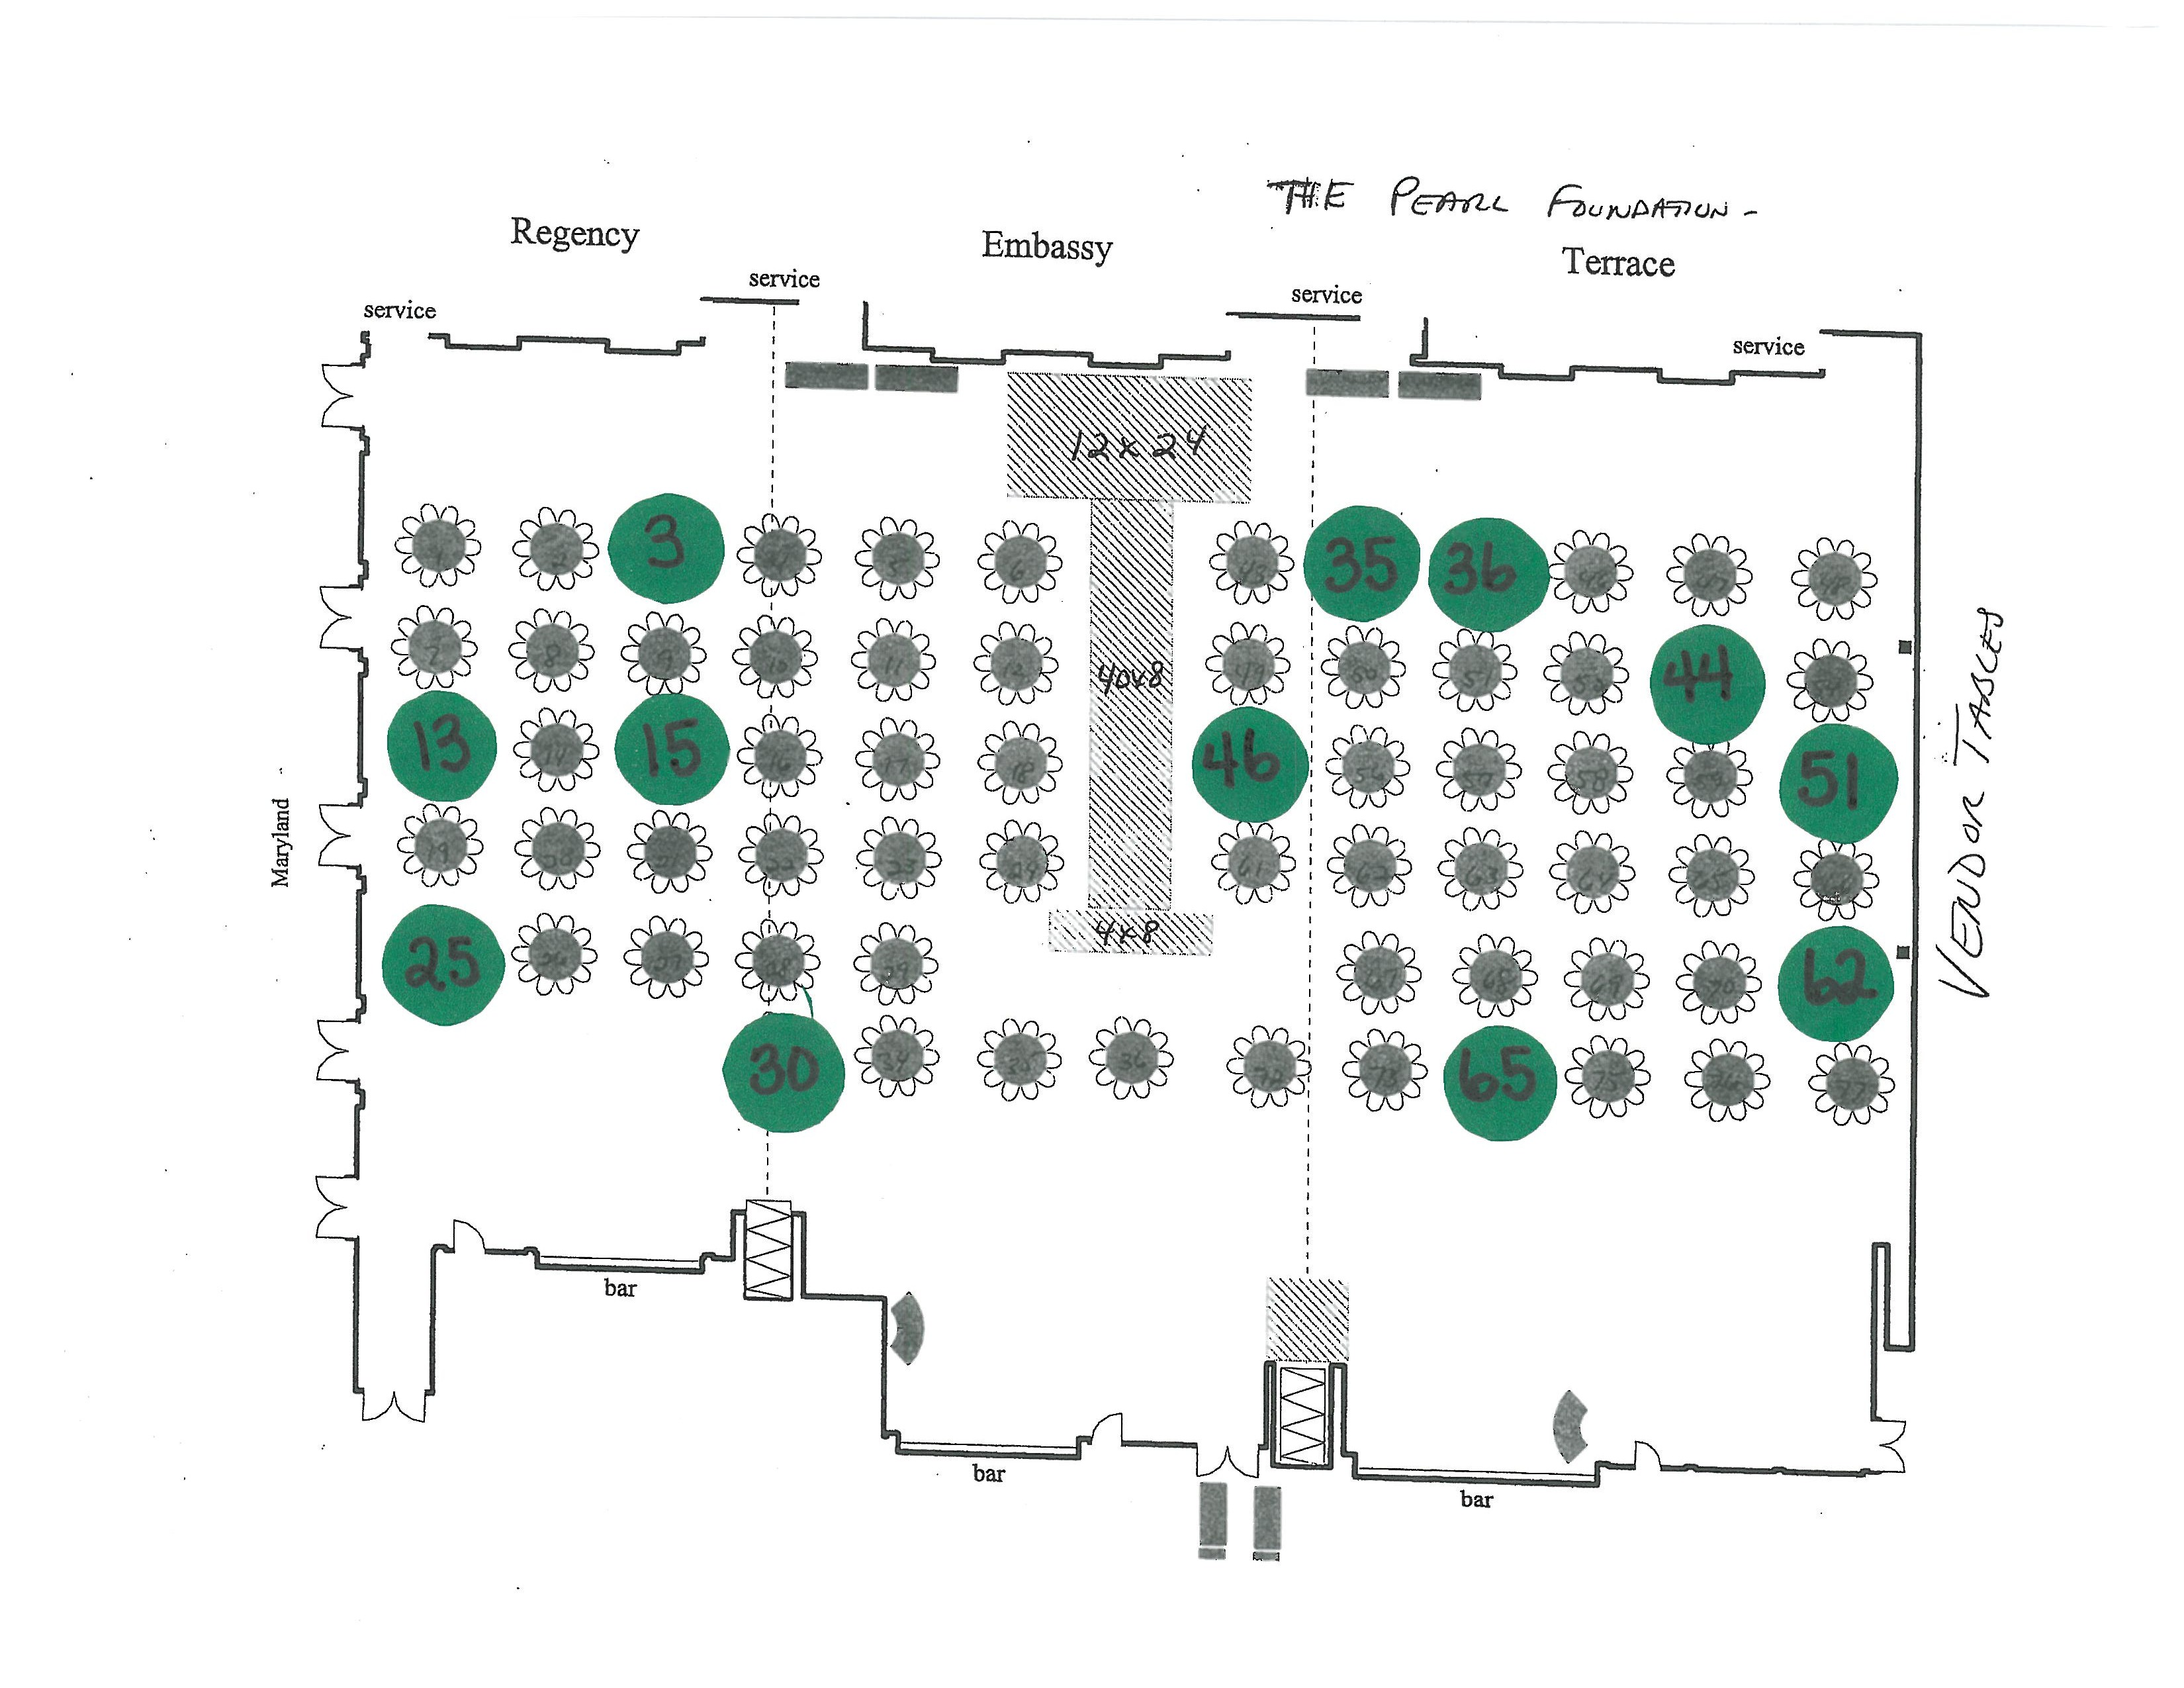 Green dots represent tables sold on eventbrite